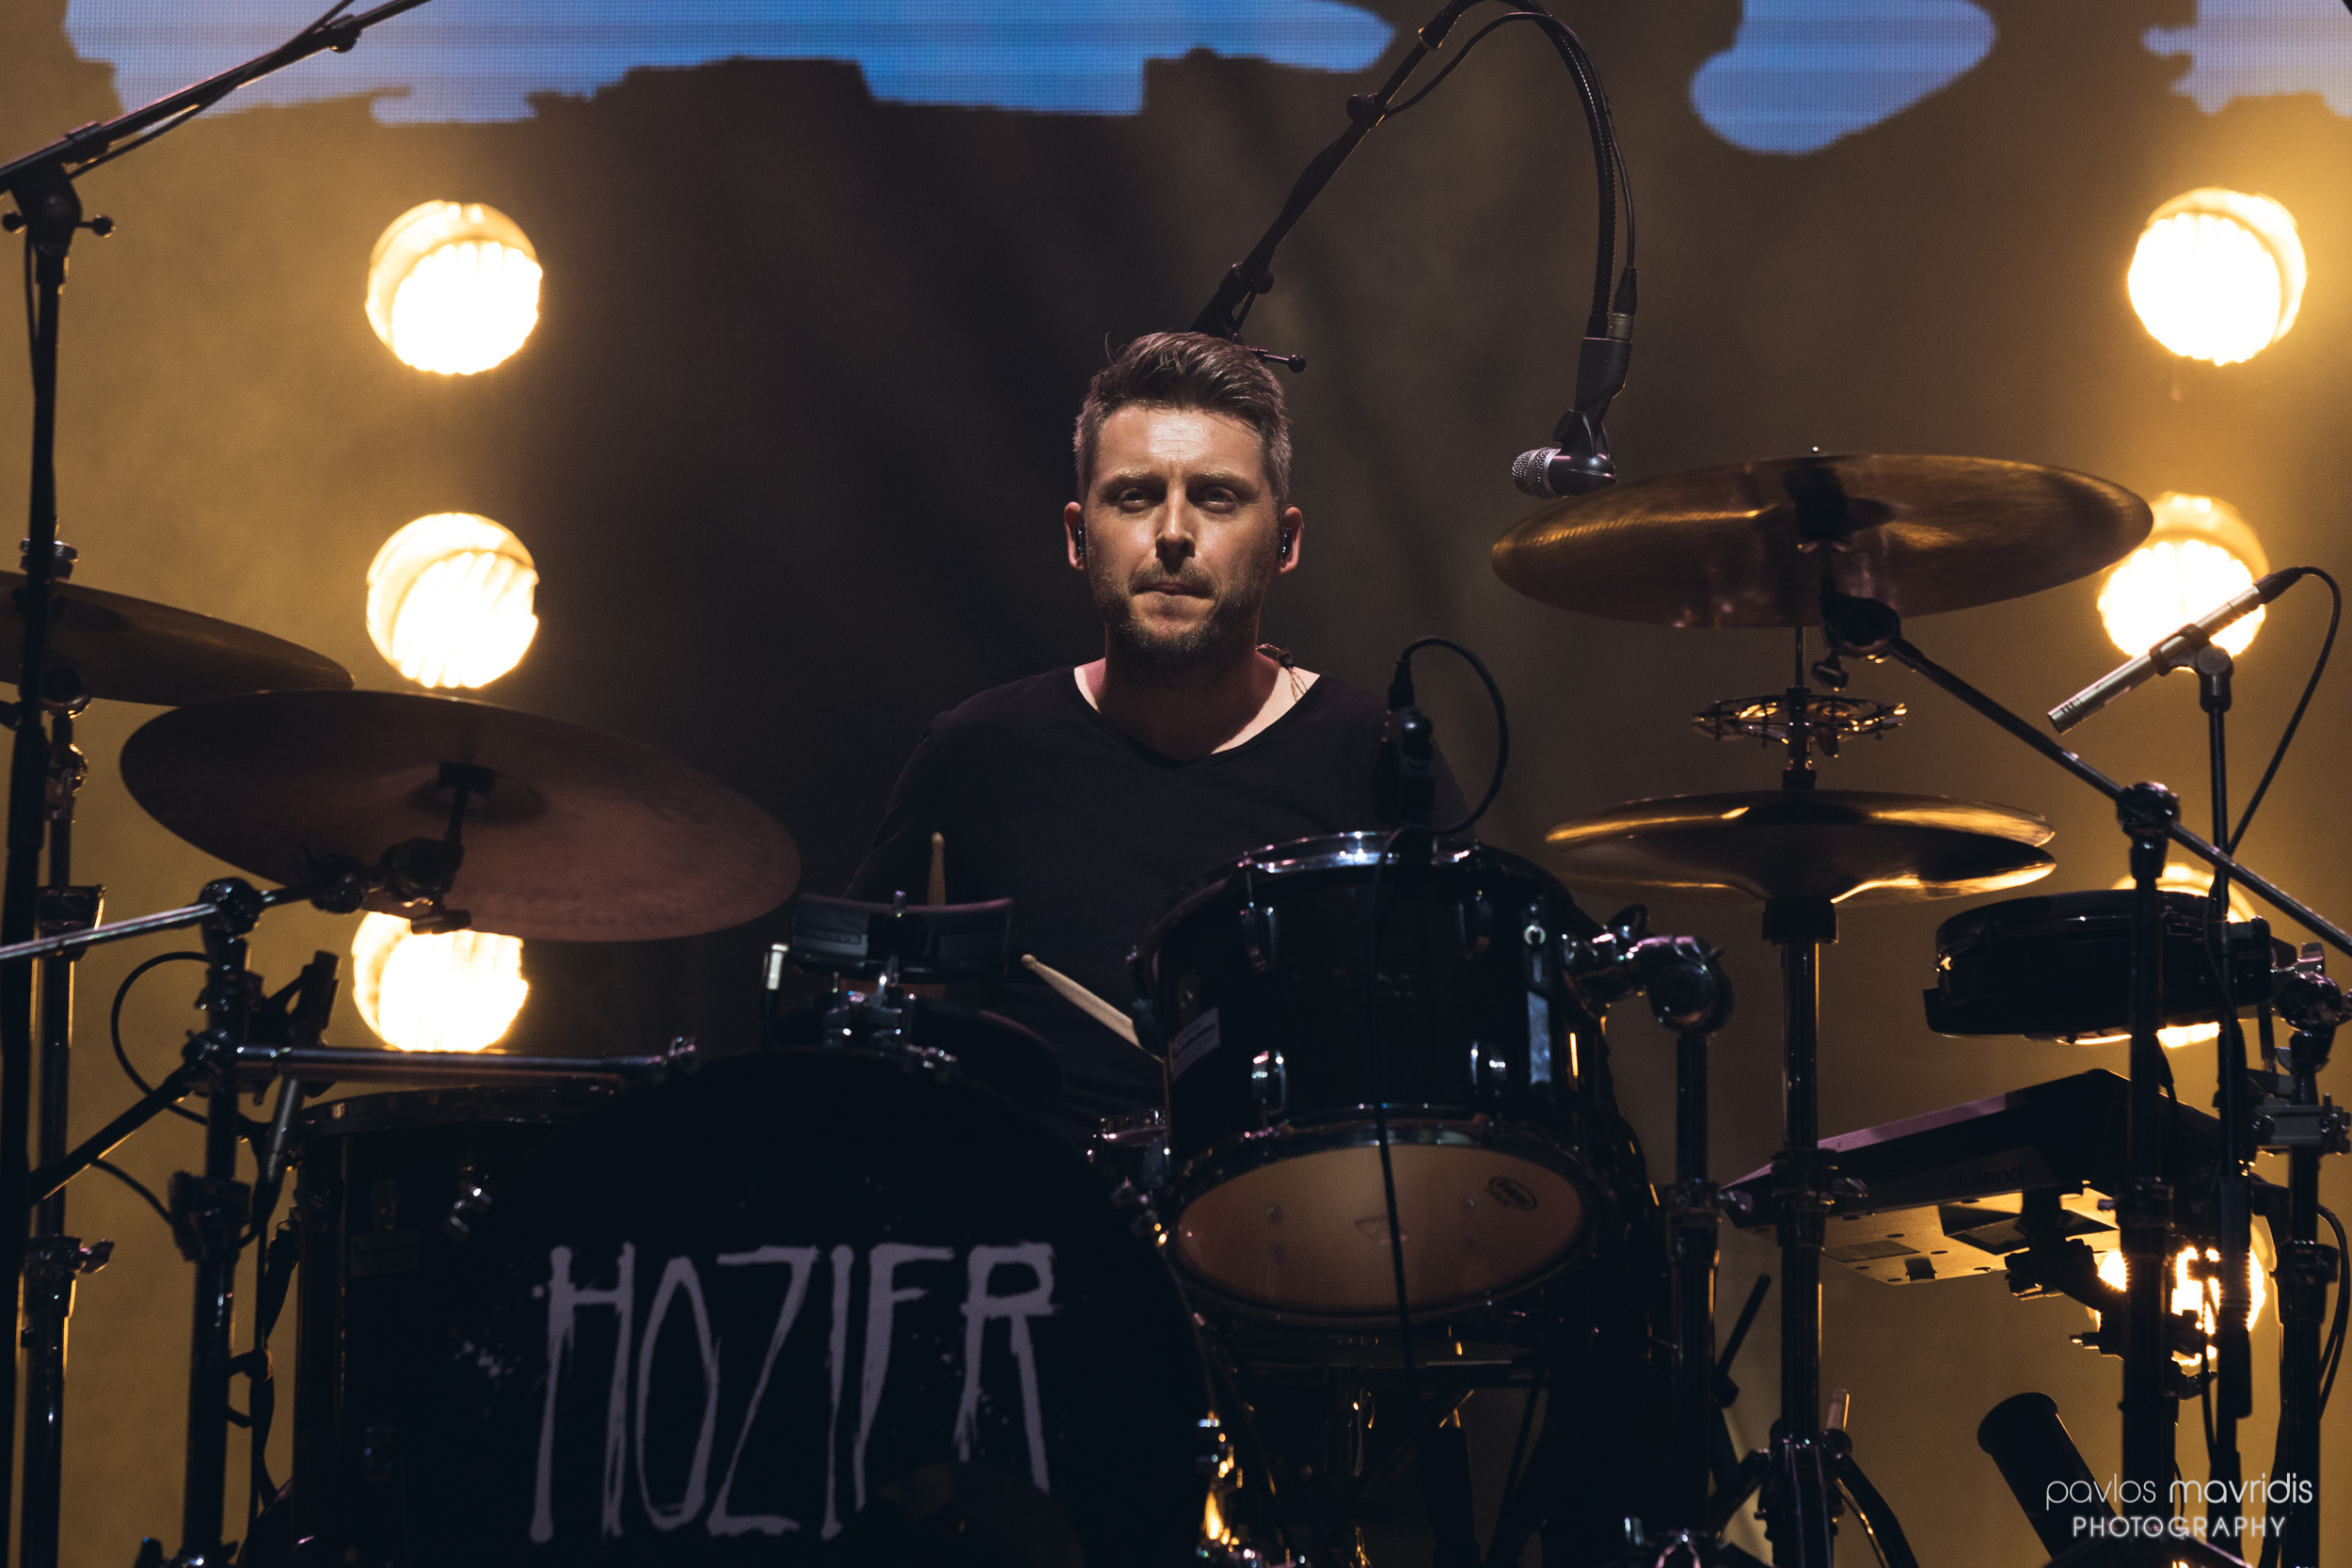 Hozier_Release Athens 2019_05_hires_web.jpg